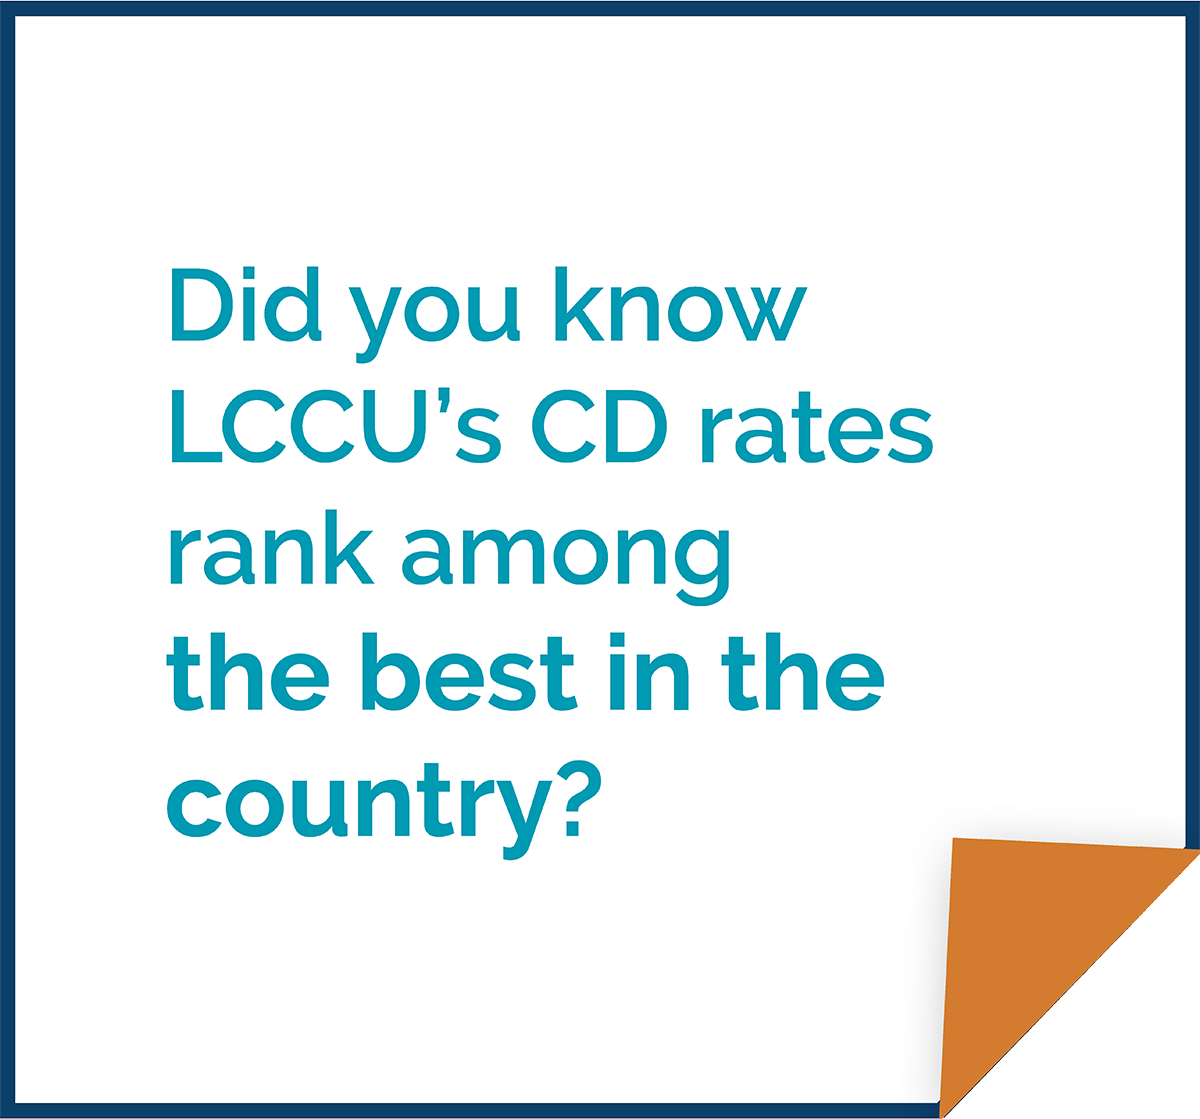 Did you know LCCU's CD rates rank among the best in the country?